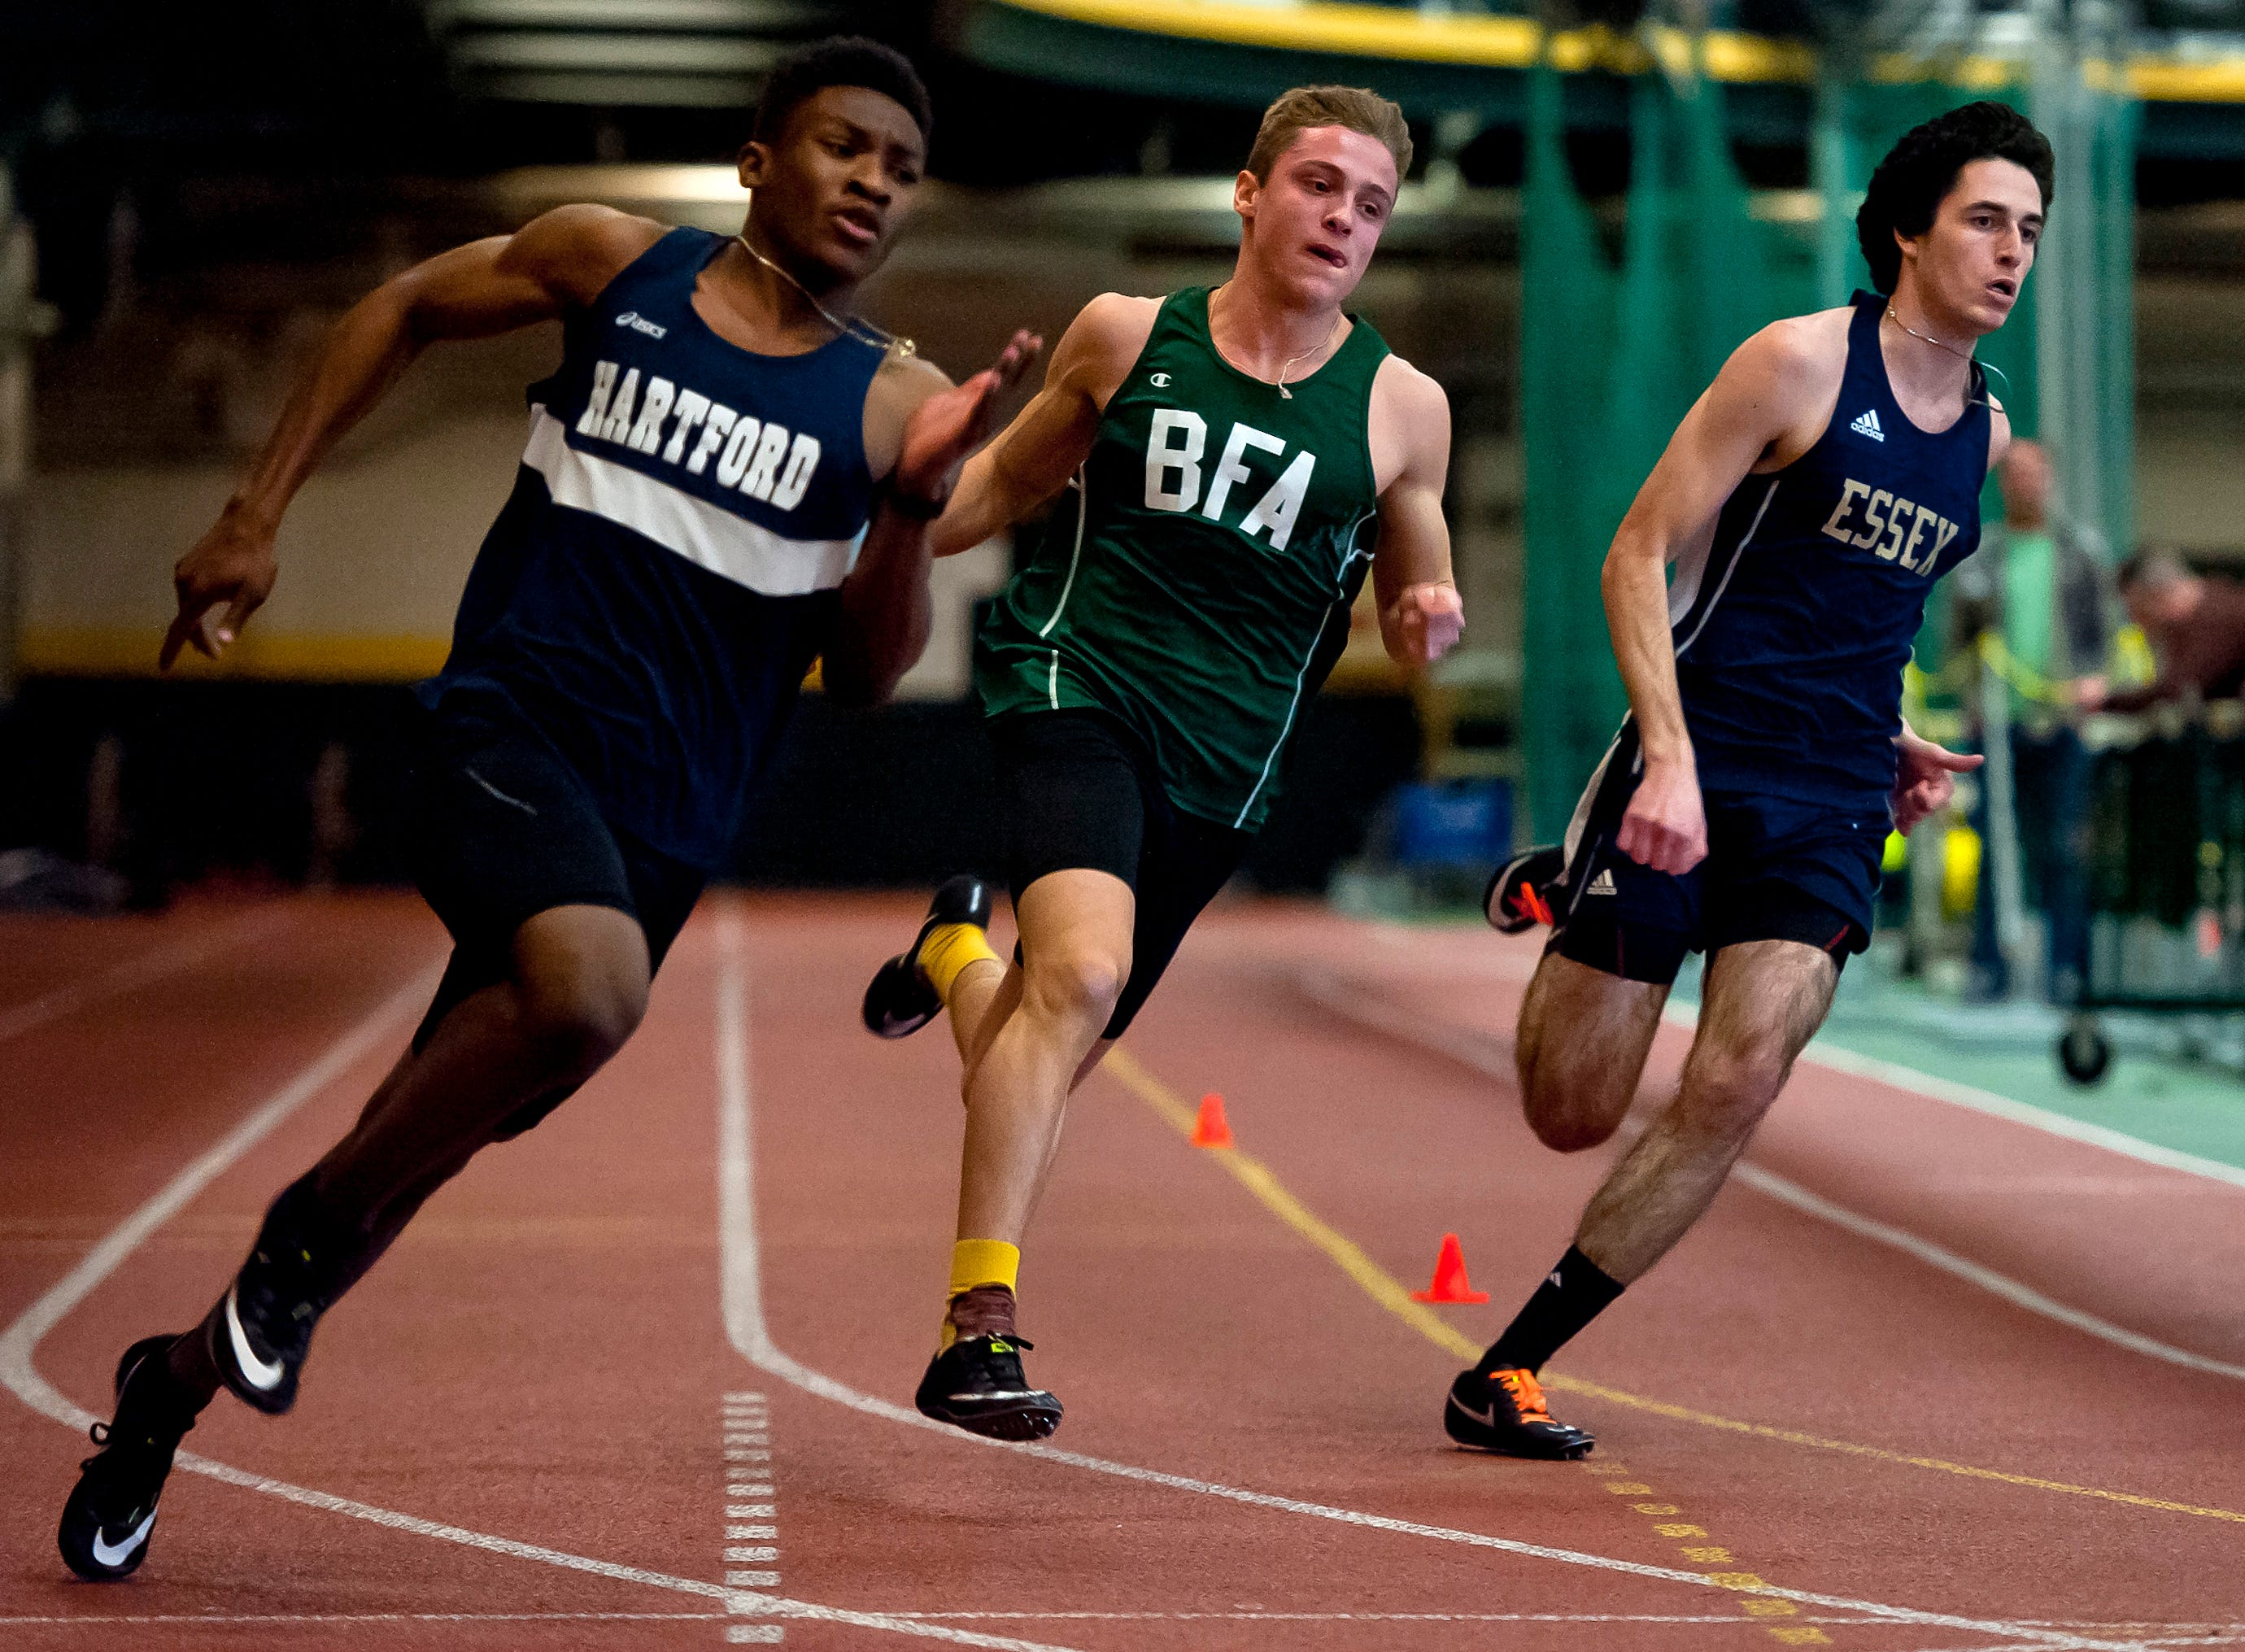 Hartford's Abayomi Lowe, left, BFA-St. Albans' Trey Poquette and Essex's Spencer Towle round a bend in the boys 300 meters at the high school indoor track state championships at the University of Vermont on Saturday.